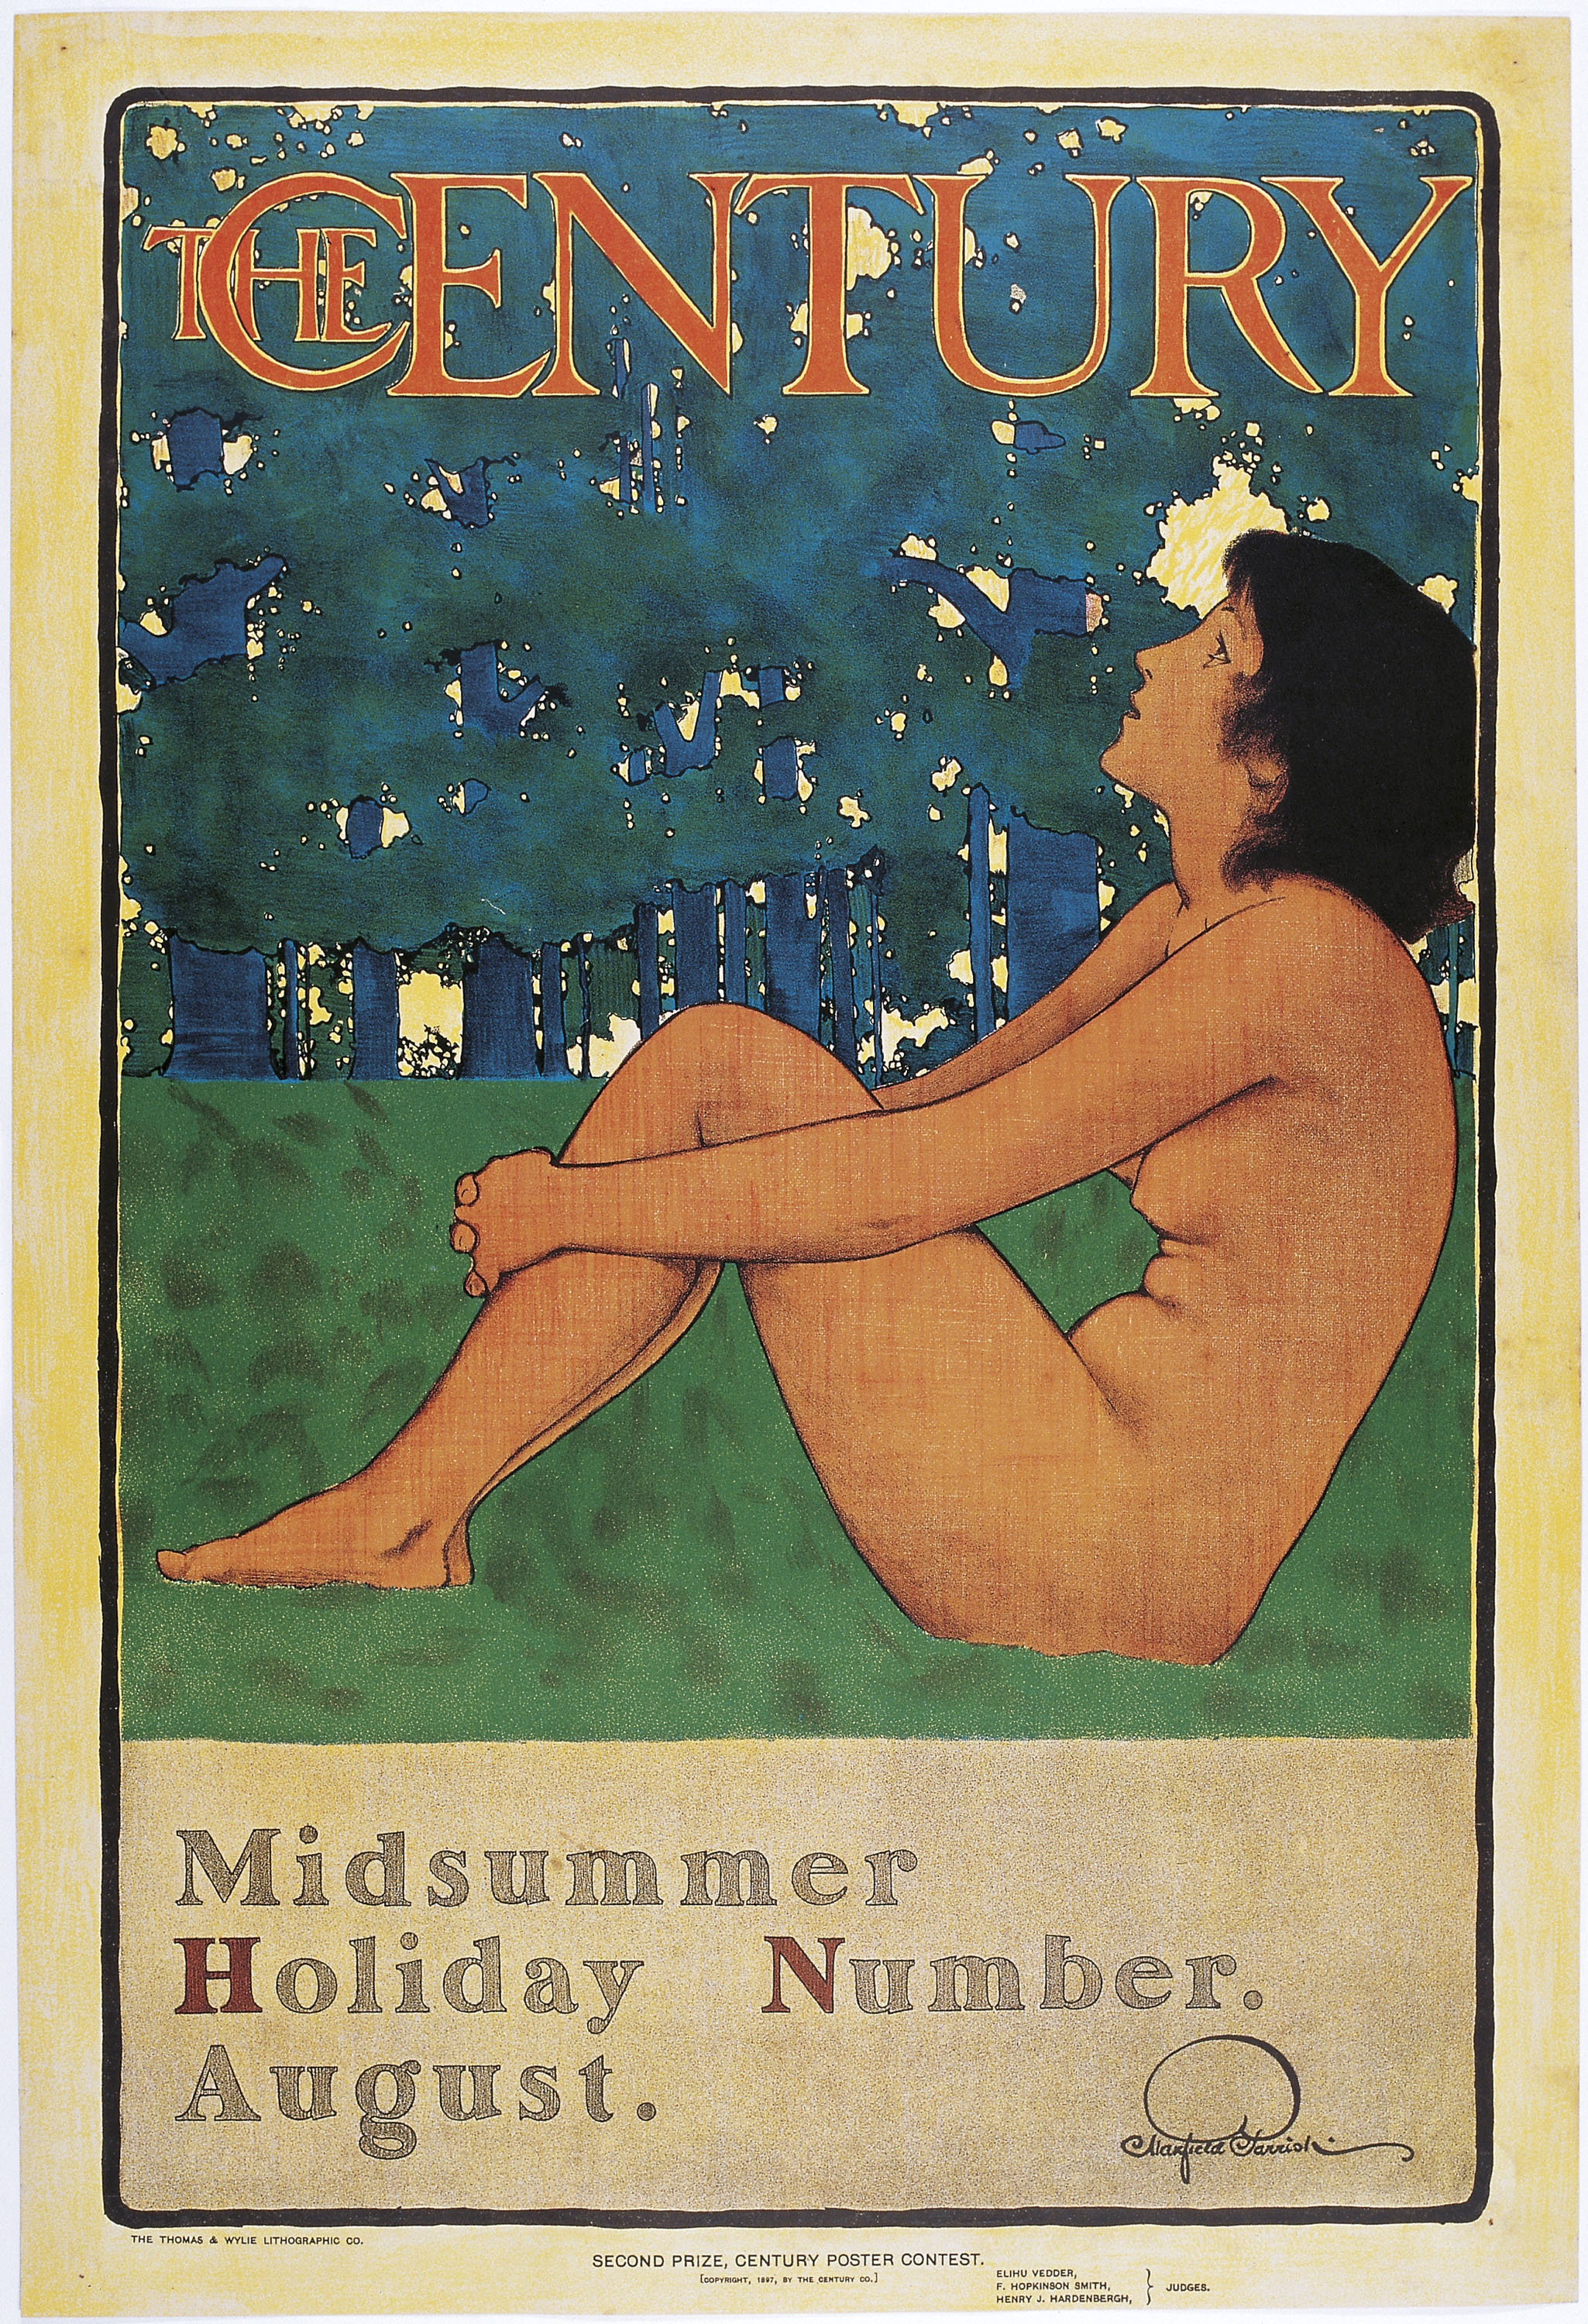 Maxfield Parrish - The Century. Midsummer Holiday Number. August - 1897